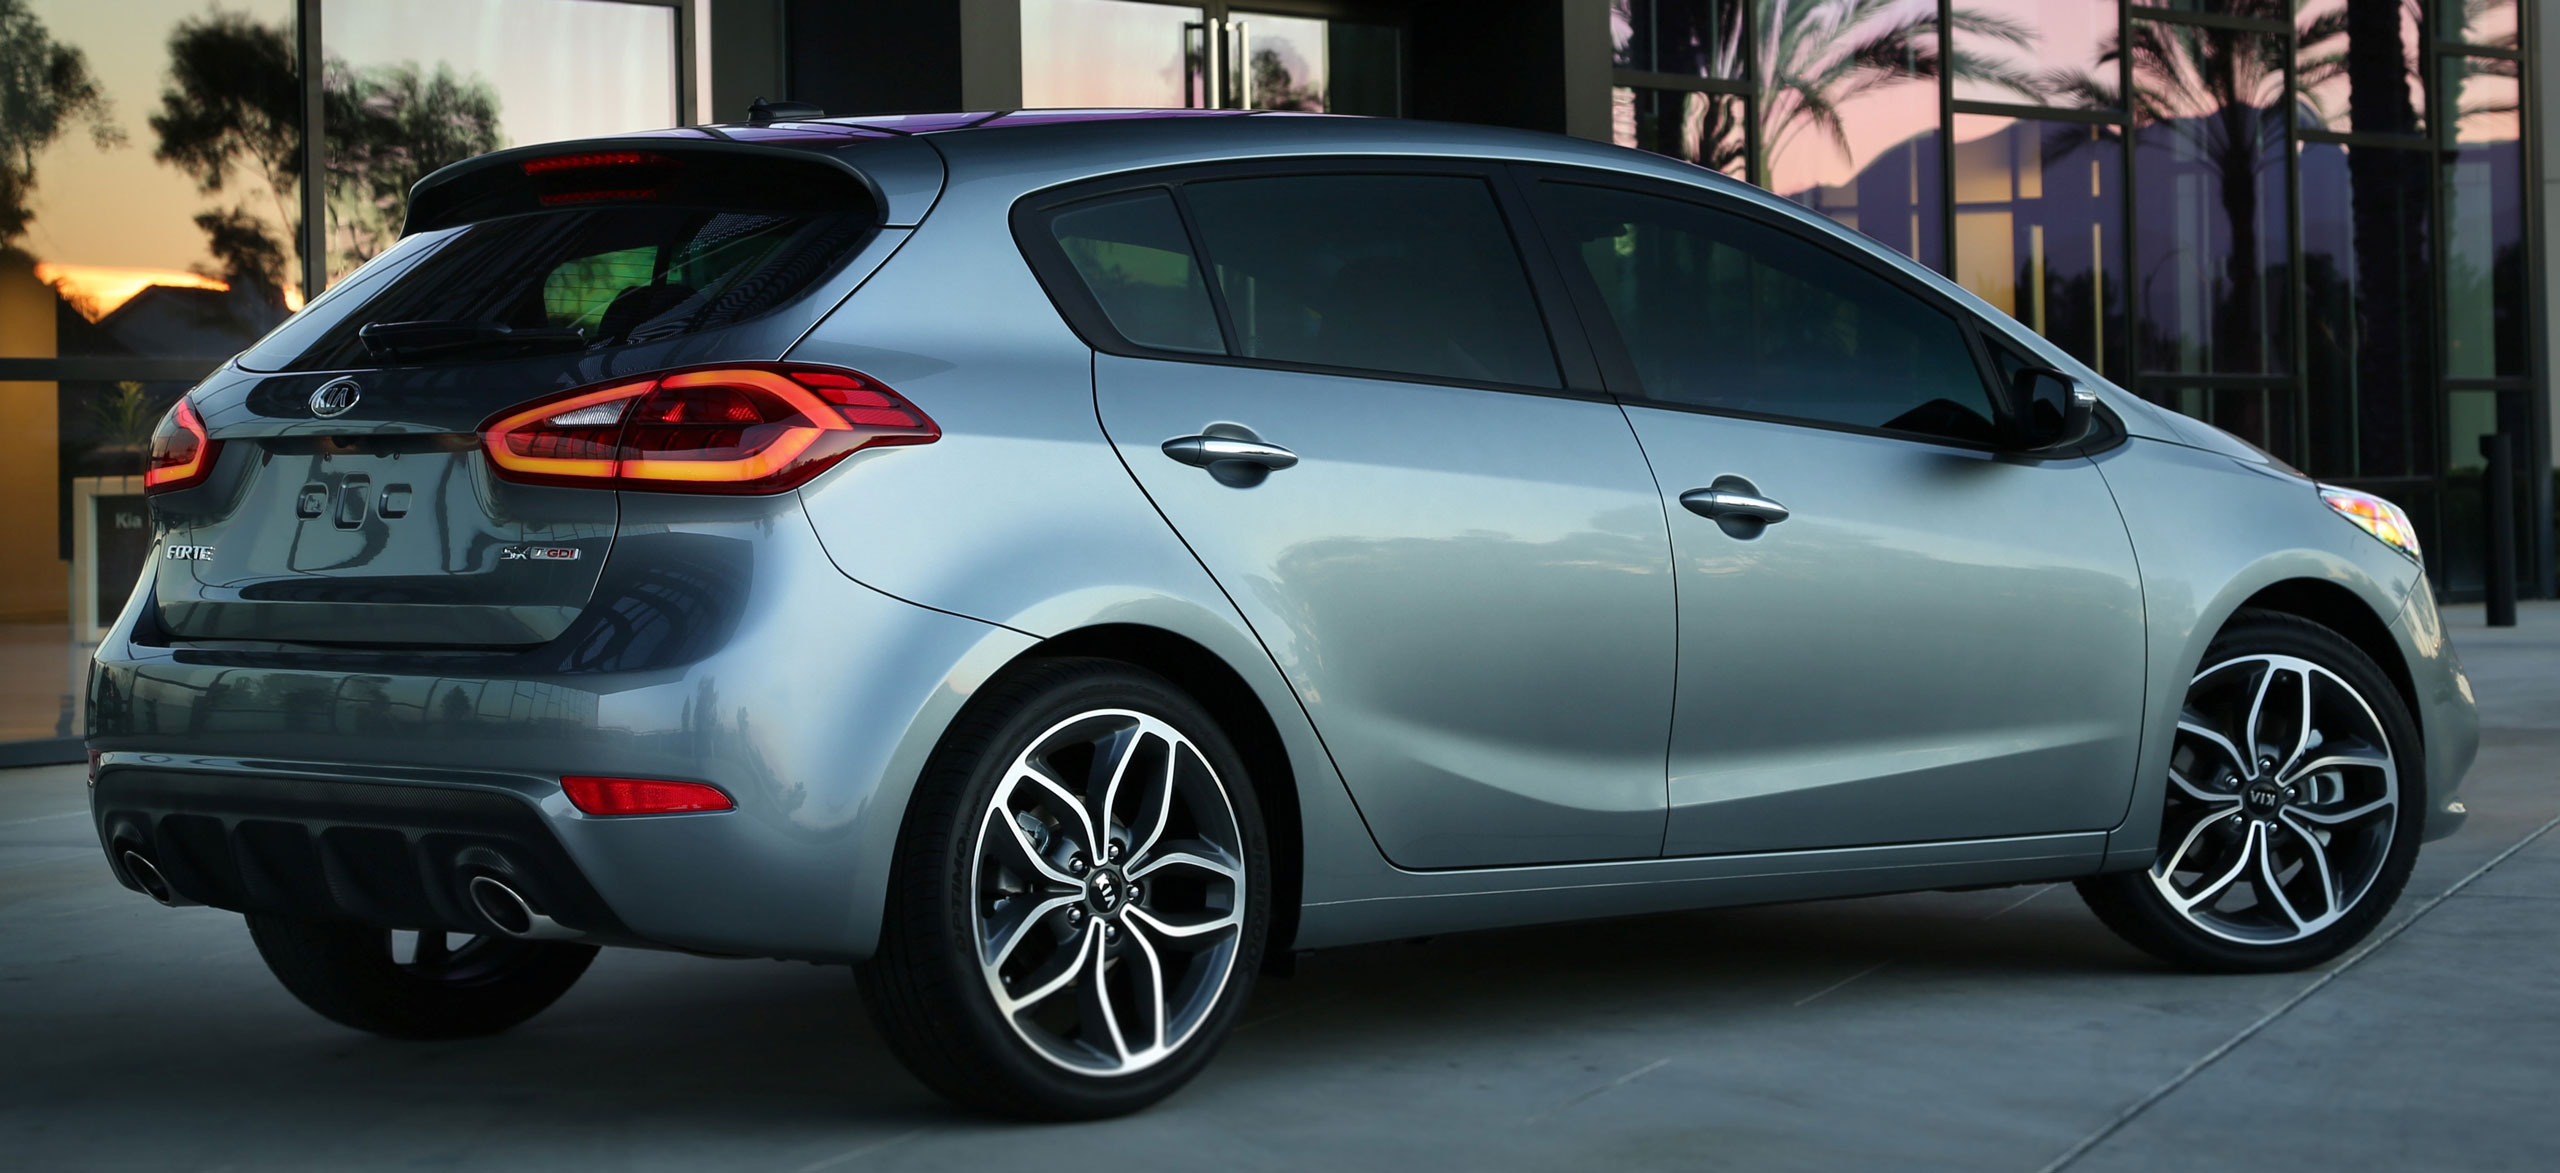 all new kia forte 5 door hatchback makes world debut at chicago auto show gets up to 201 hp gdi. Black Bedroom Furniture Sets. Home Design Ideas